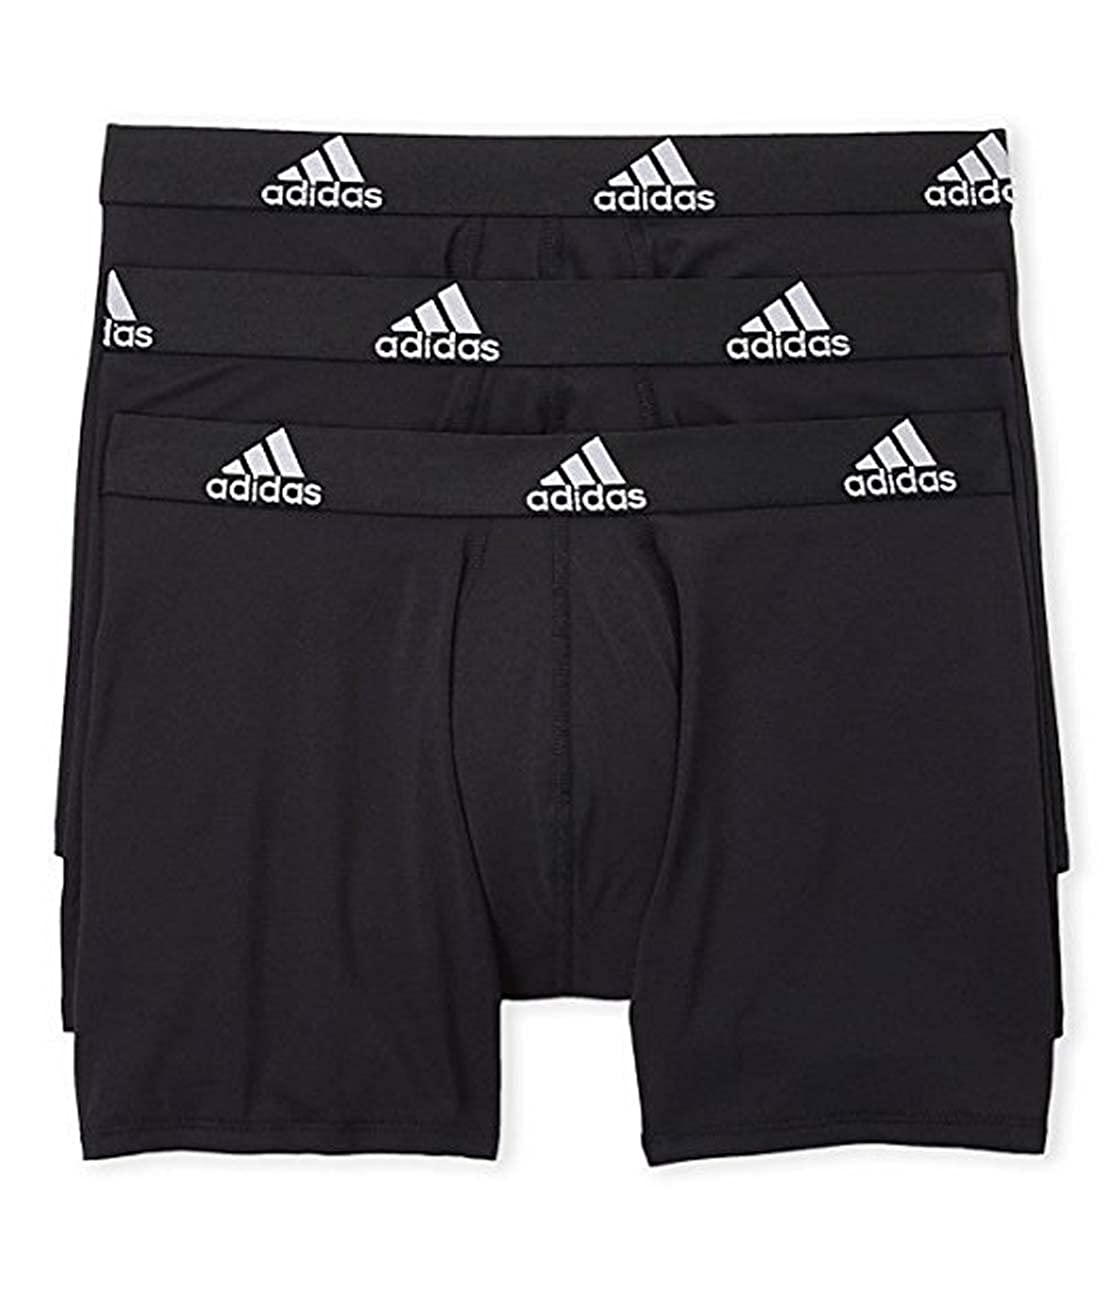 f20b322fed82 adidas Mens 3 Pack Climalite Performance Boxer Briefs at Amazon Men s  Clothing store